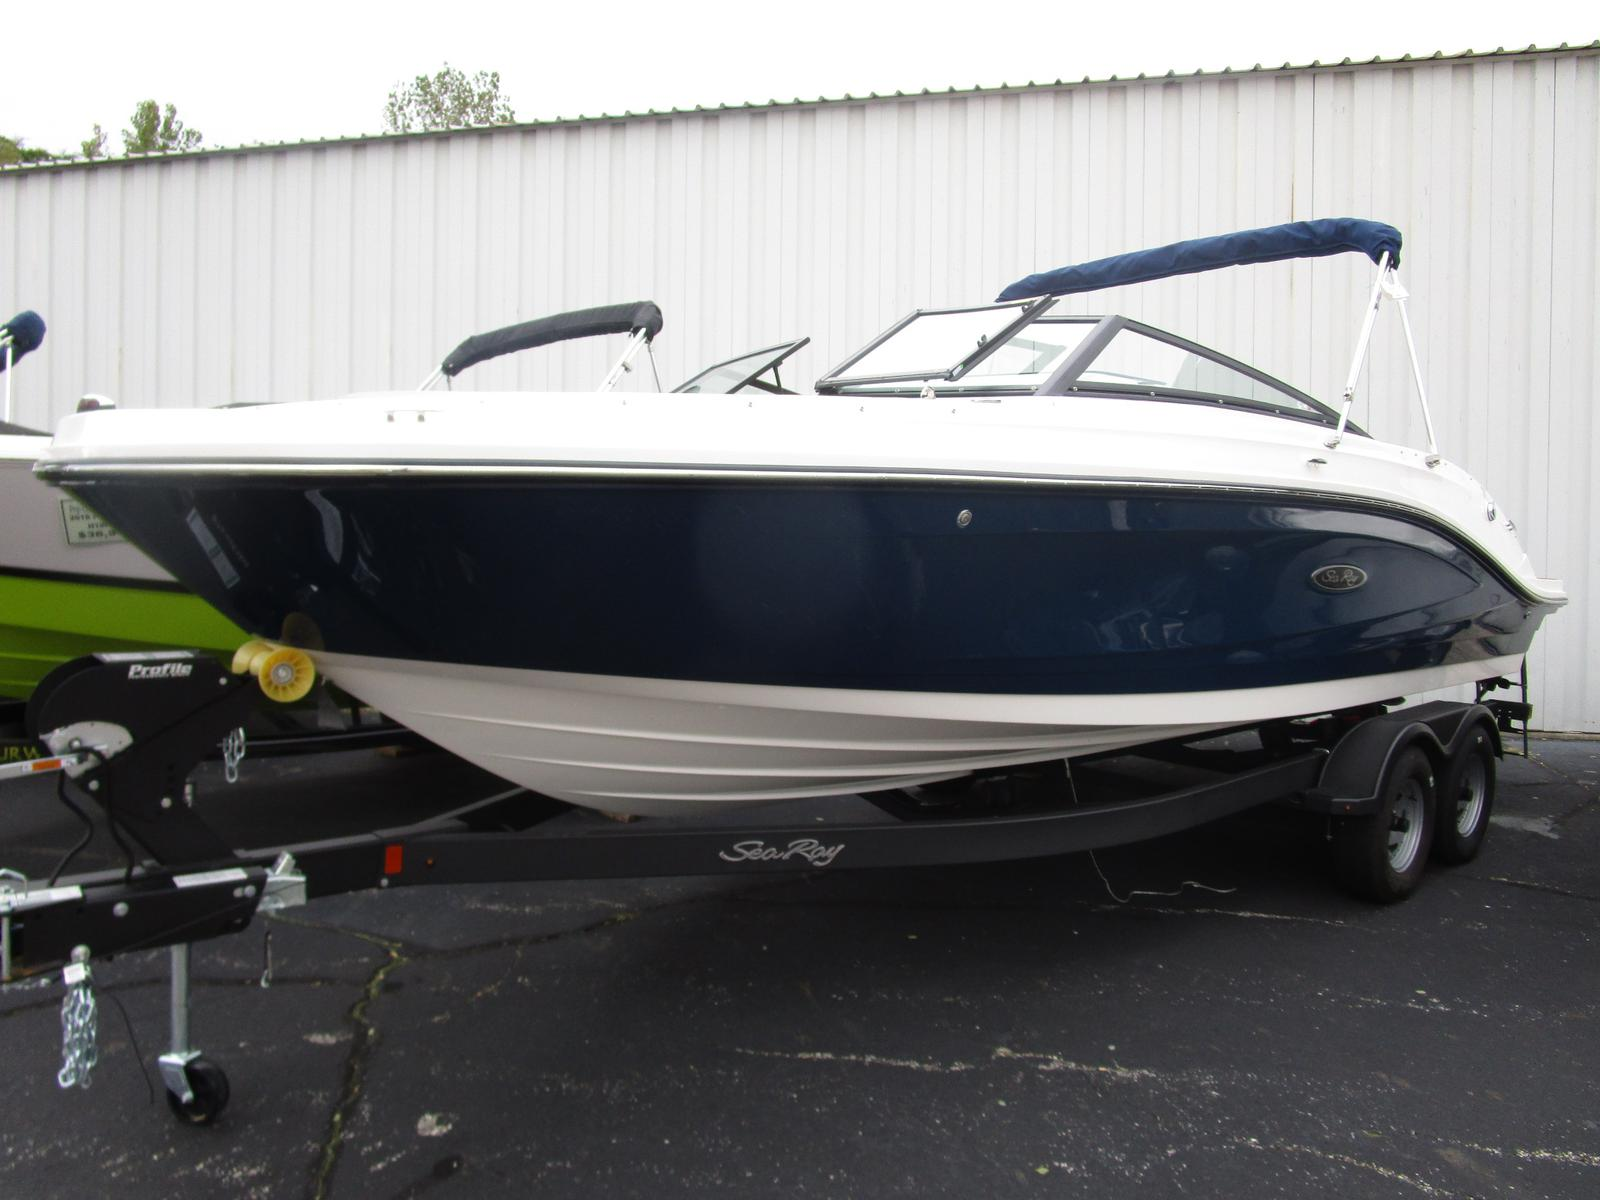 2019 Sea Ray boat for sale, model of the boat is SPX 230 & Image # 1 of 7